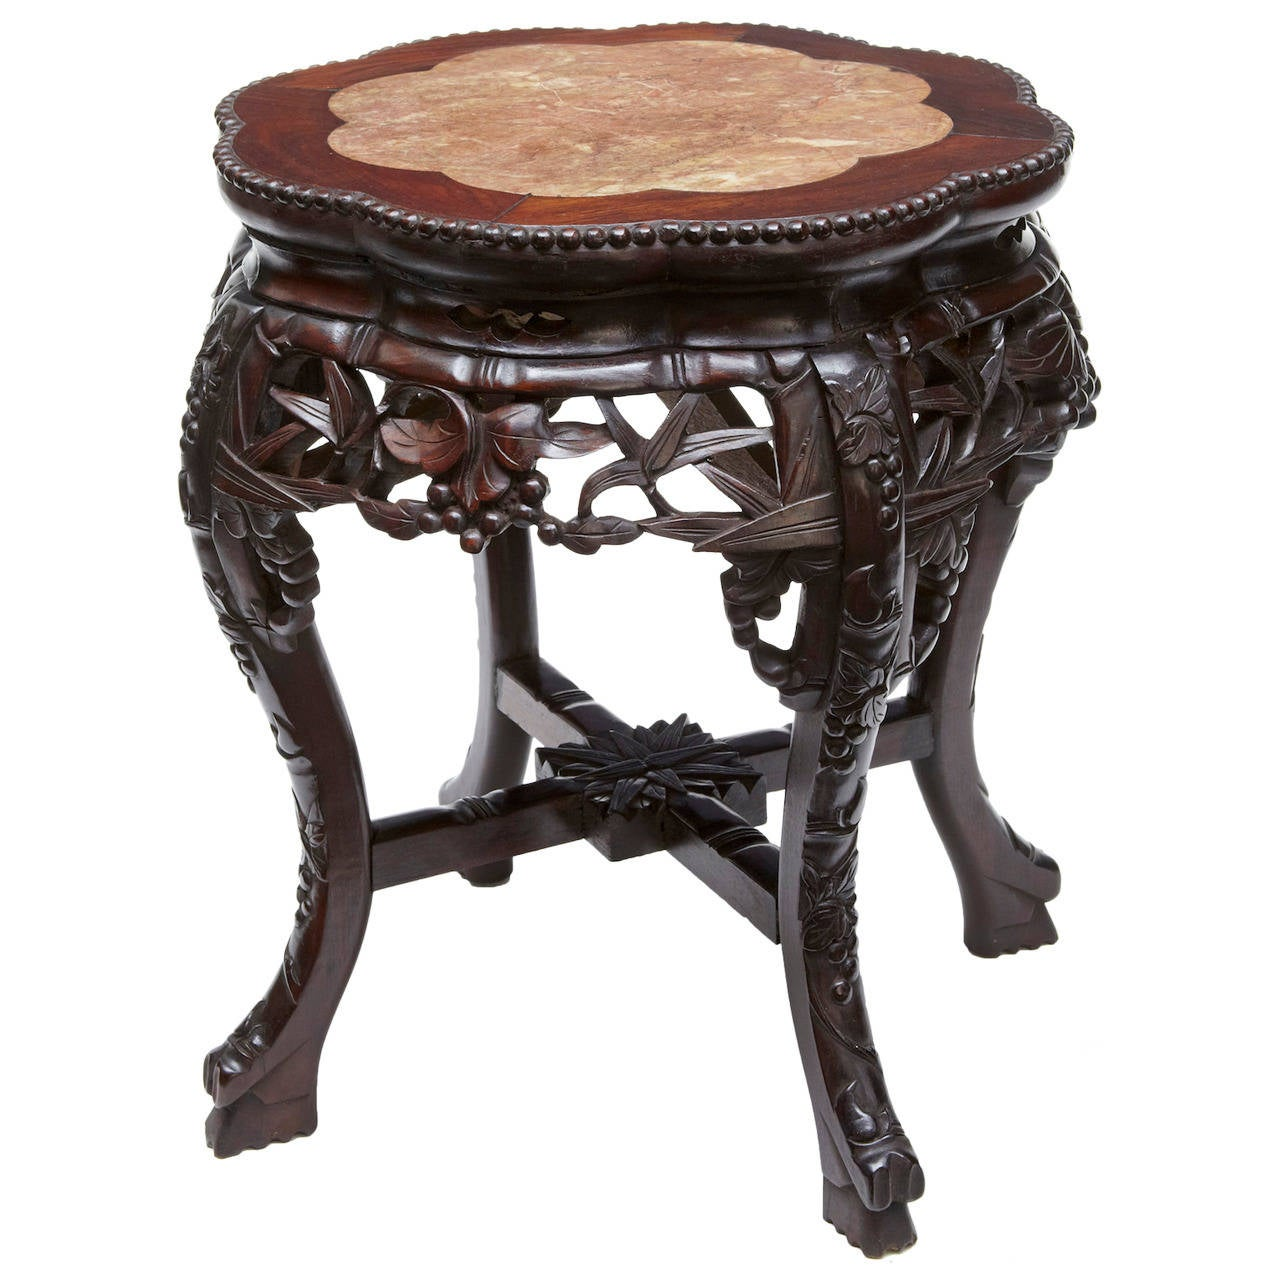 19th Century Chinese Carved Hardwood Plant Stand Table At